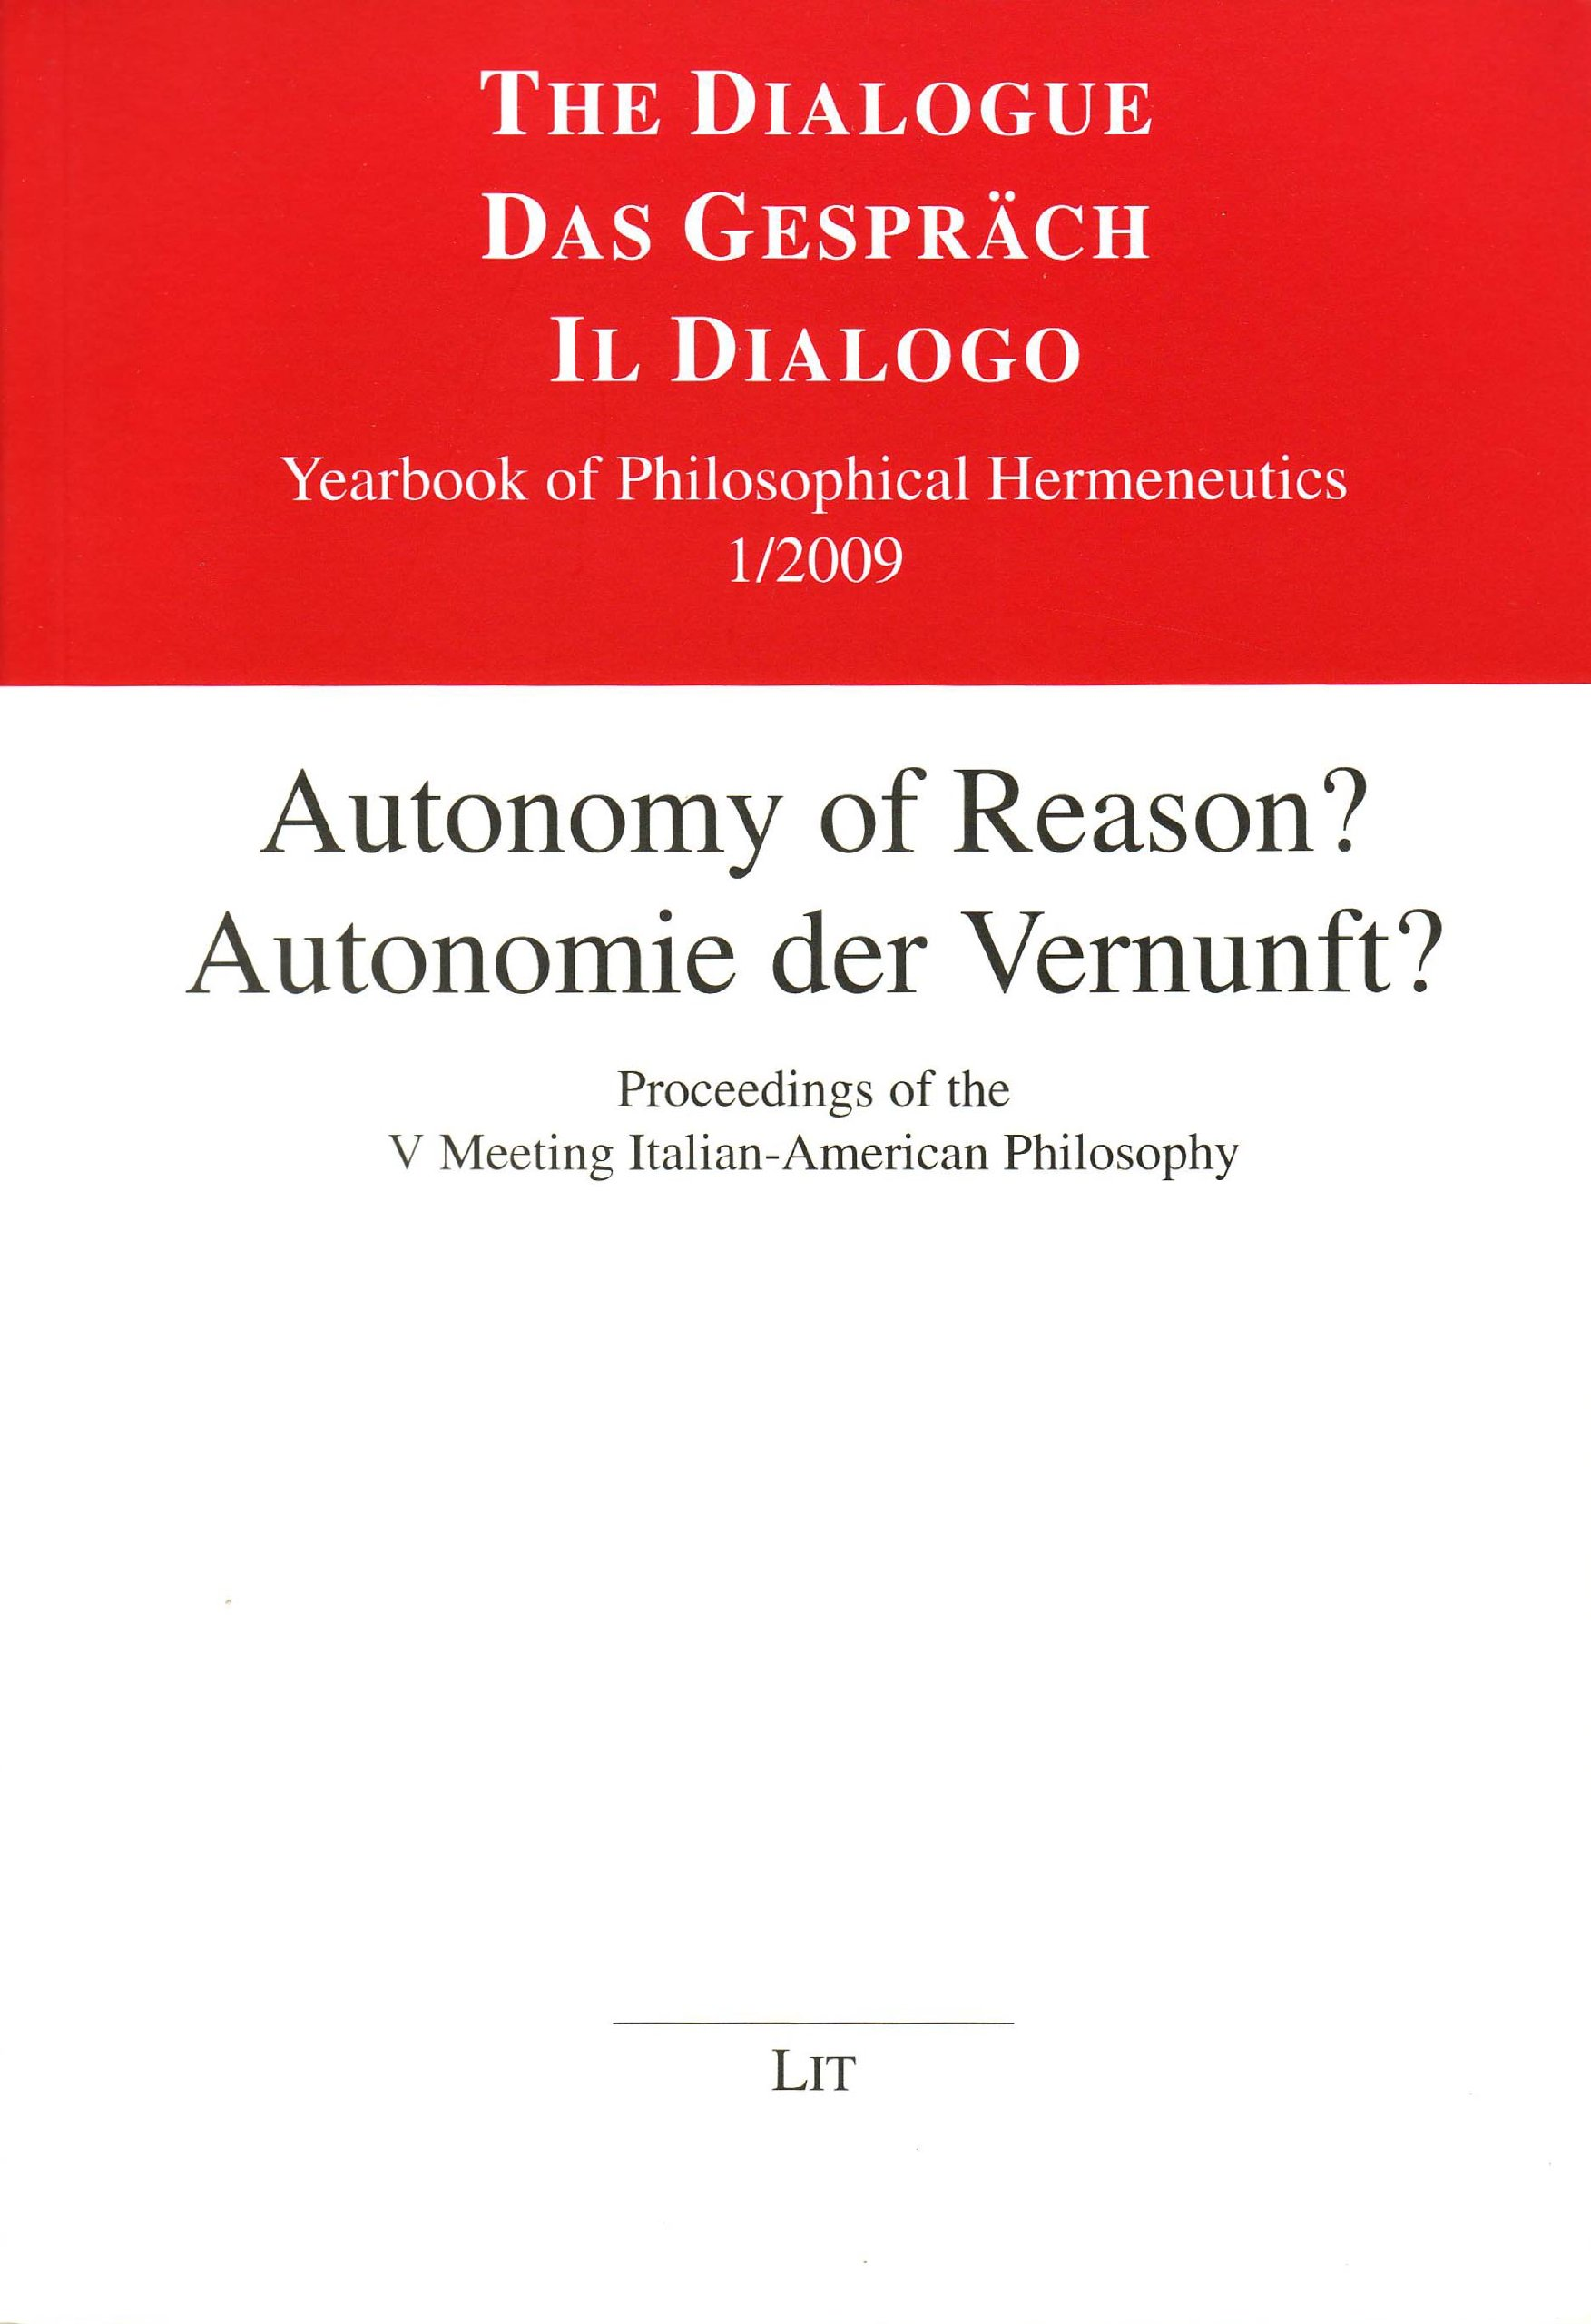 Download Autonomy of Reason? Autonomie der Vernunft?: Proceedings of the V Meeting Italian-American Philosophy (The Dialogue/Das Gesprach/Il Dialogo) ebook